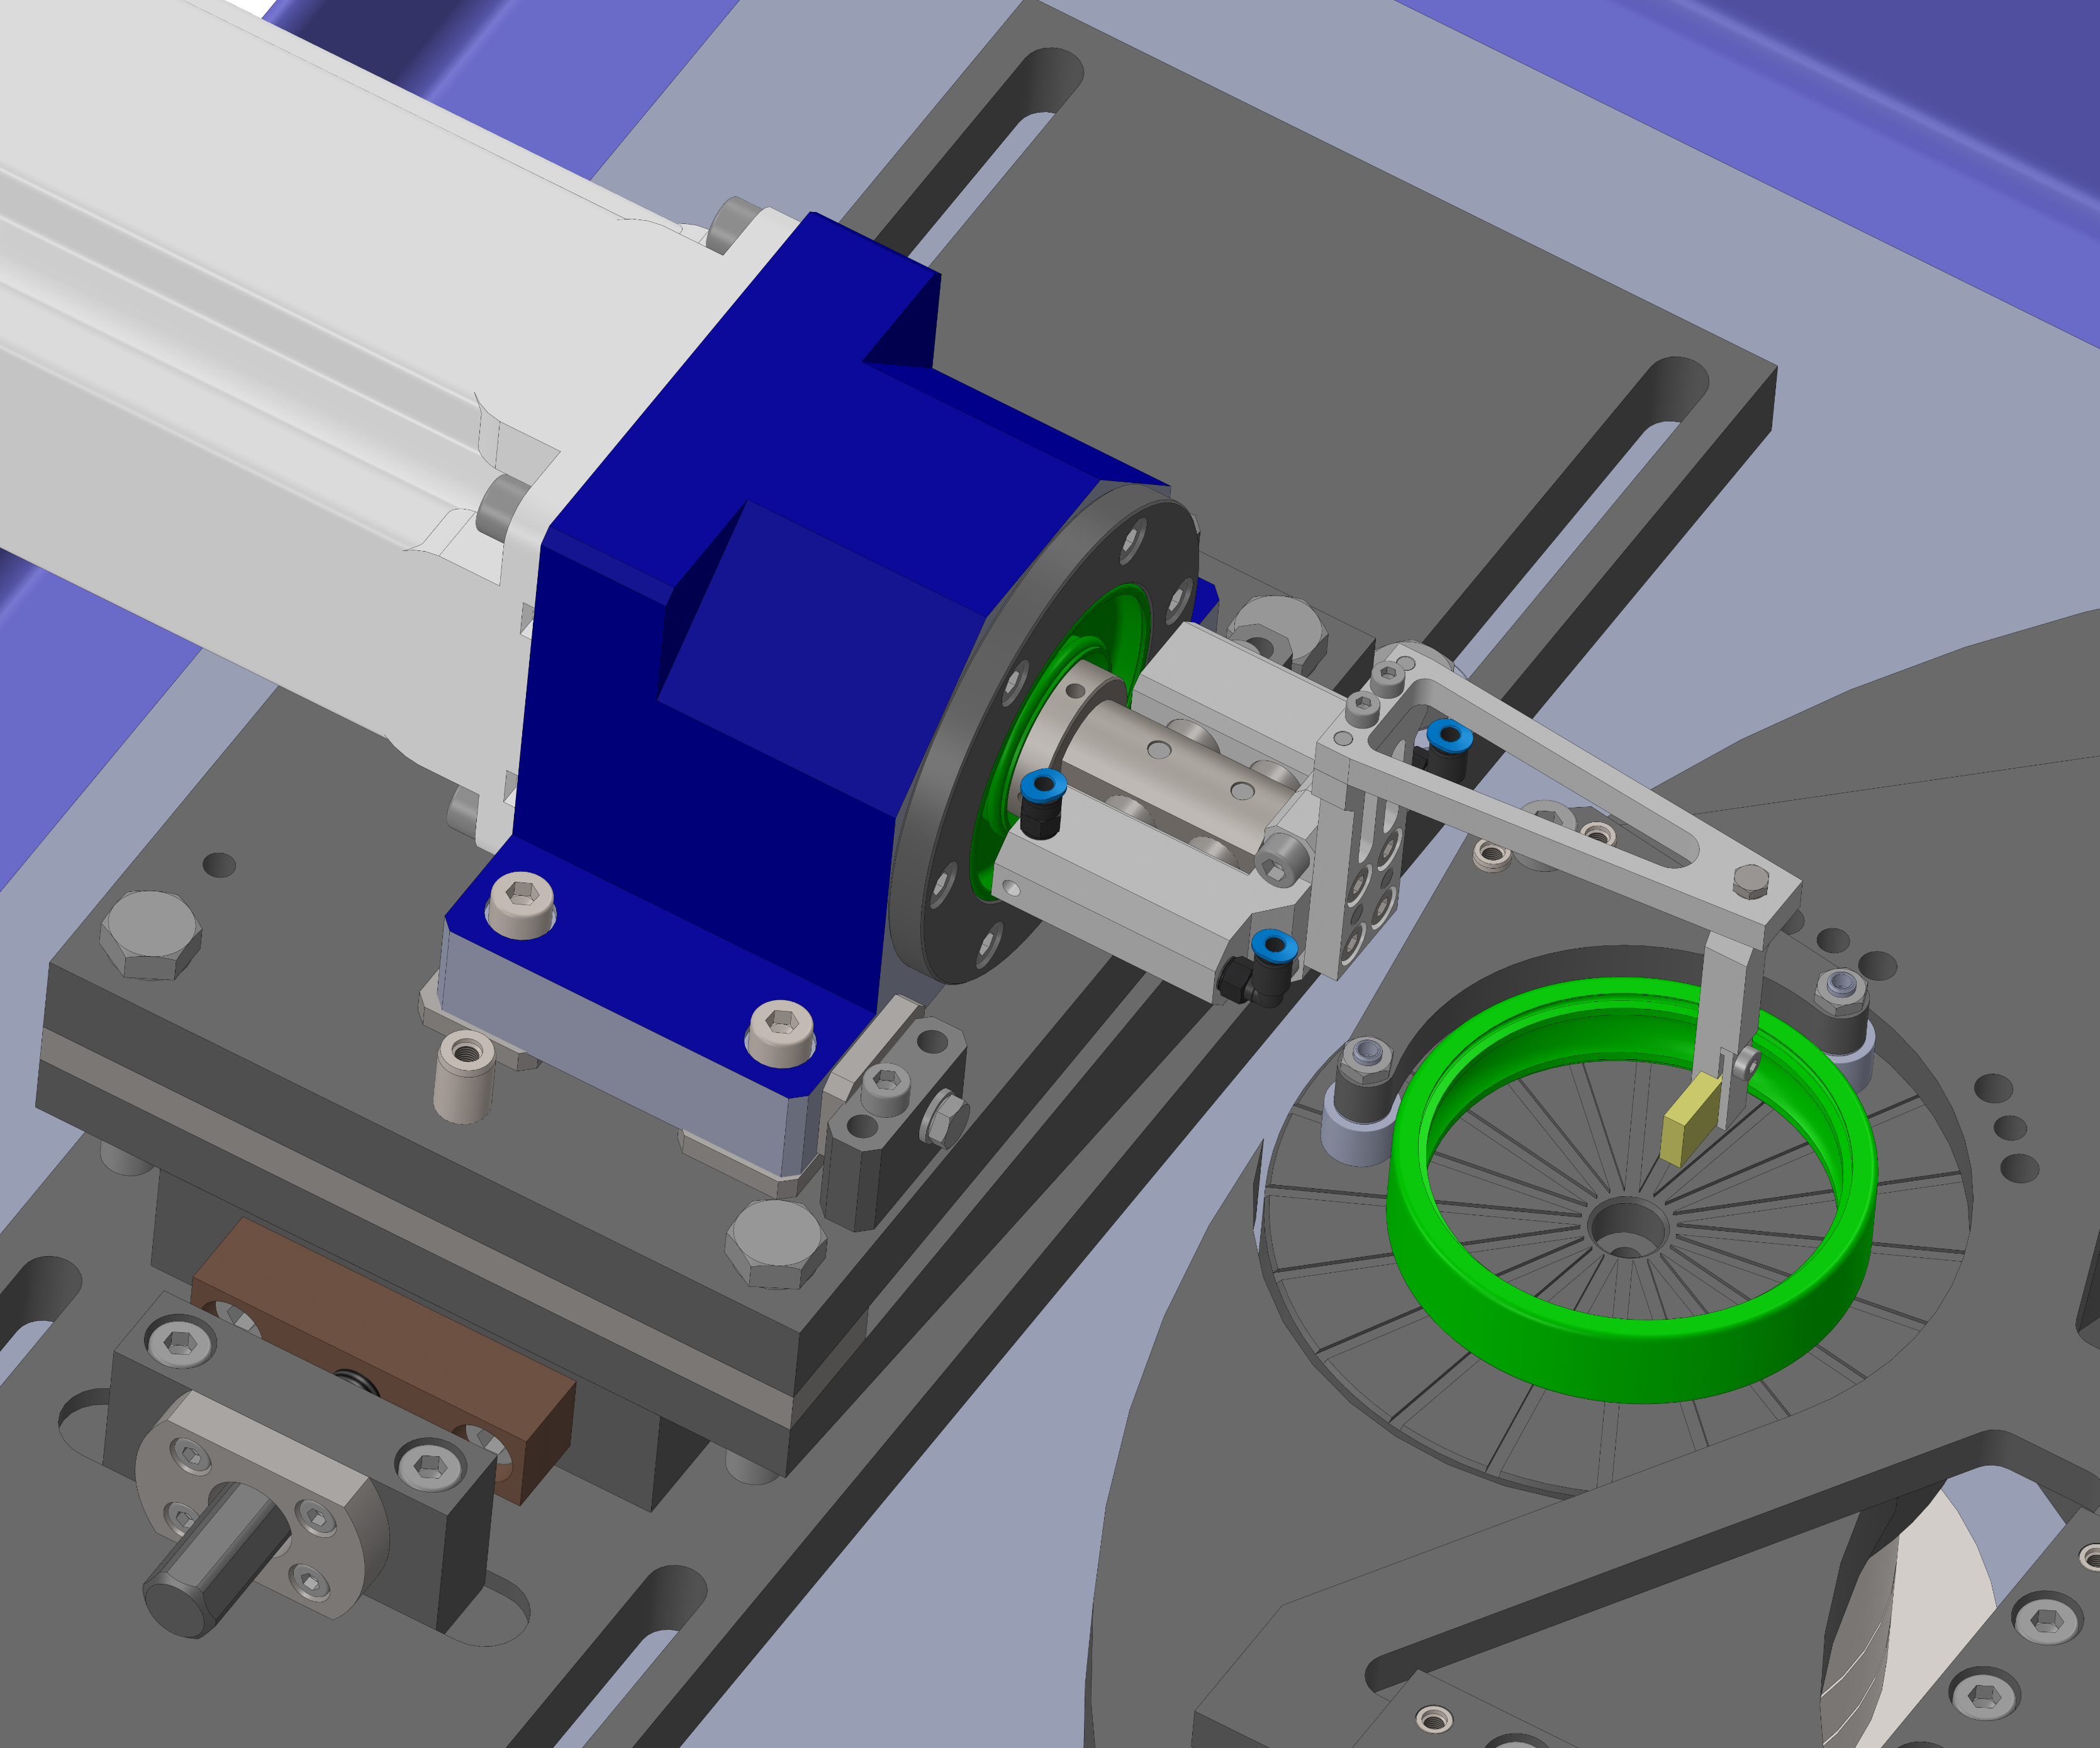 Nagel Precision's BF-series rendering